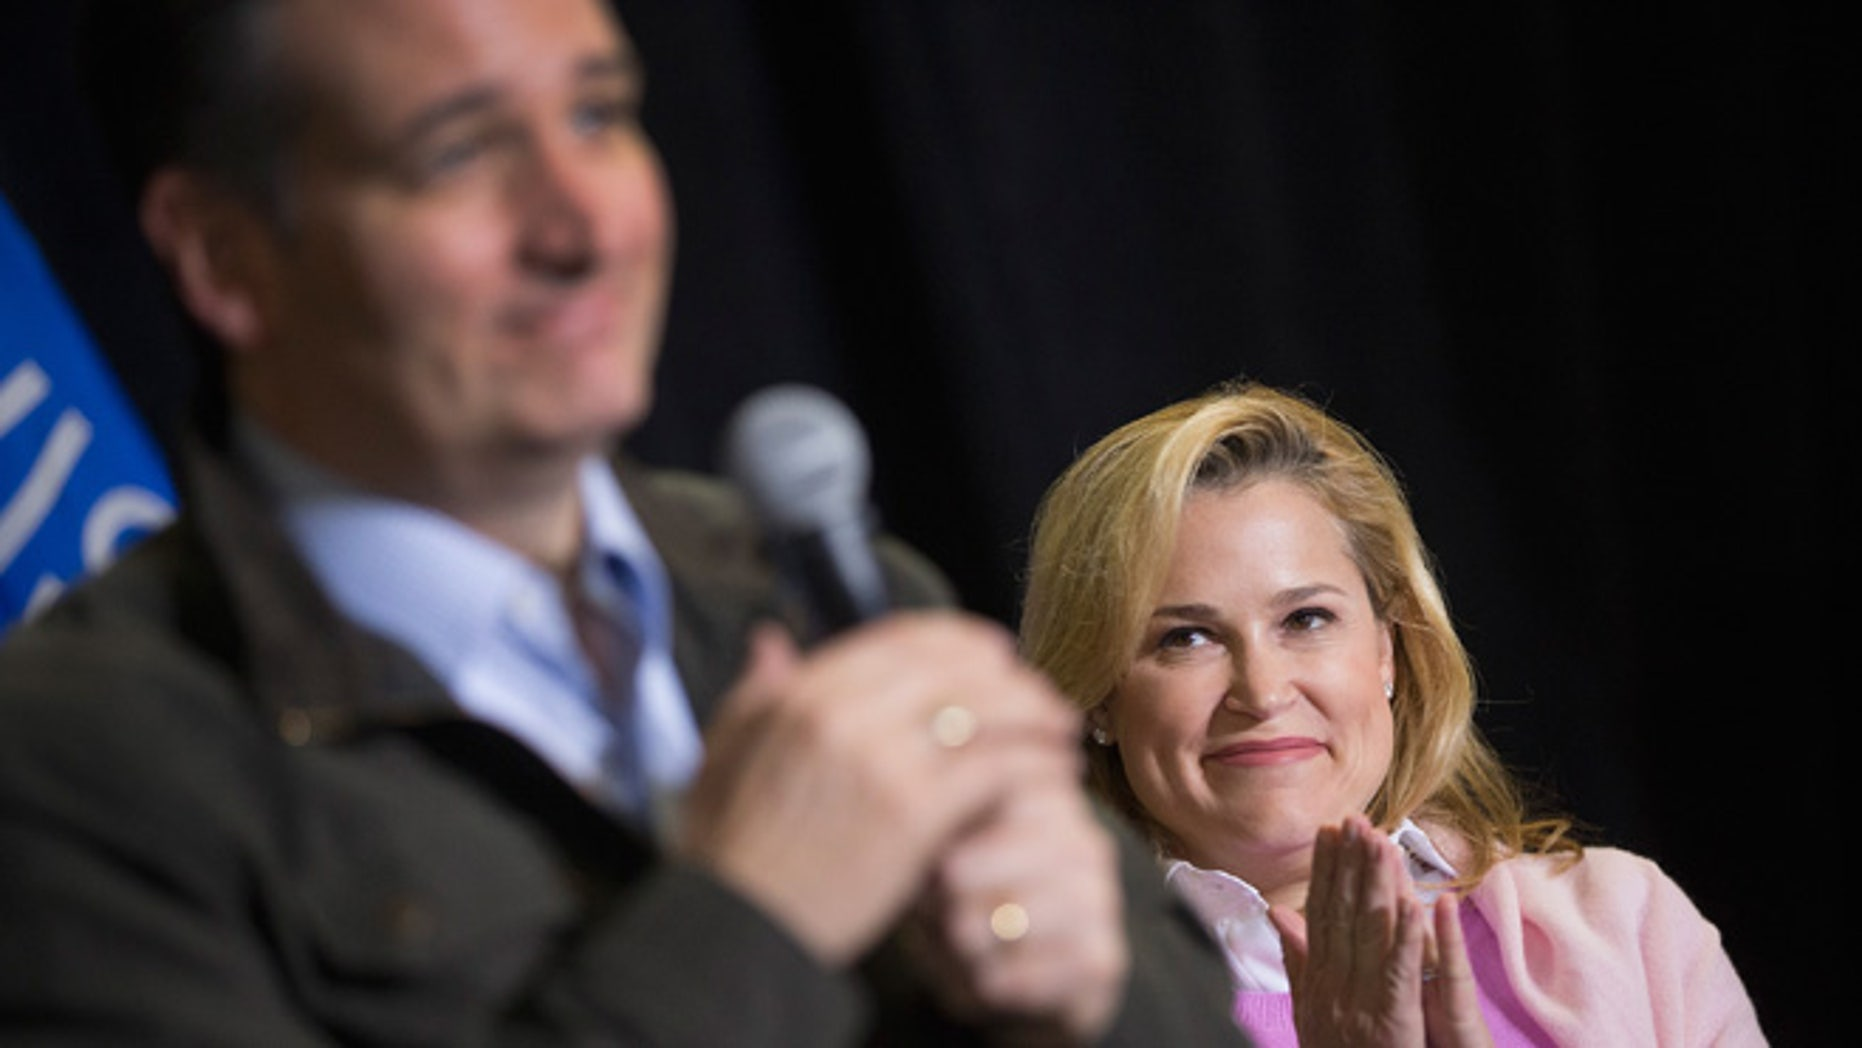 DANE, WI - MARCH 24:  Heidi Cruz listens as her husband Republican presidential candidate Sen. Ted Cruz (R-TX) speaks to workers at Dane Manufacturing during a campaign stop on March 24, 2016 in Dane, Wisconsin. Wisconsin voters go to the polls for the state's primary on April 5.  (Photo by Scott Olson/Getty Images)